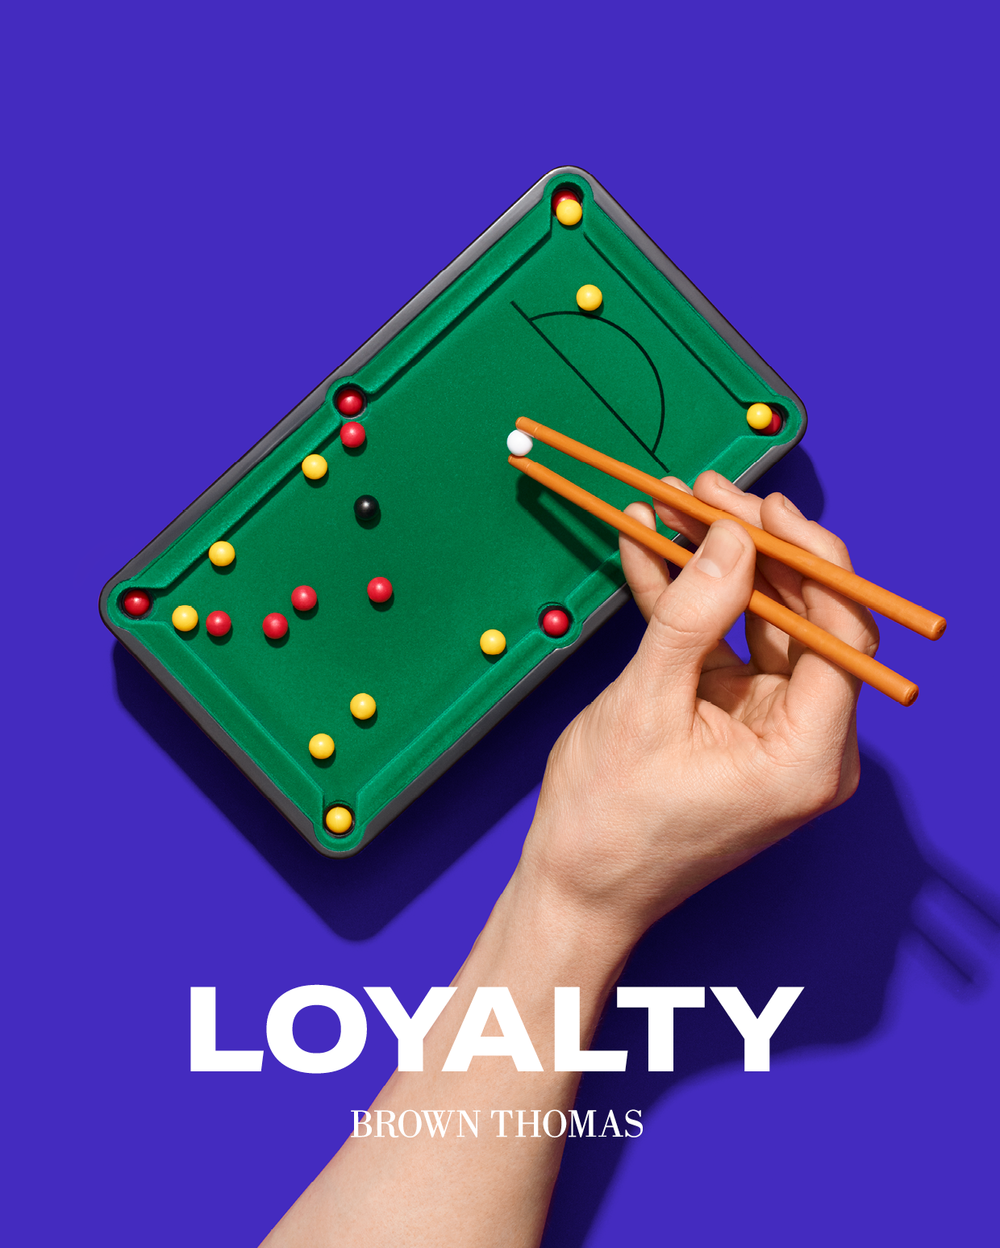 Together We Create_Brown Thomas_Loyalty_Snooker